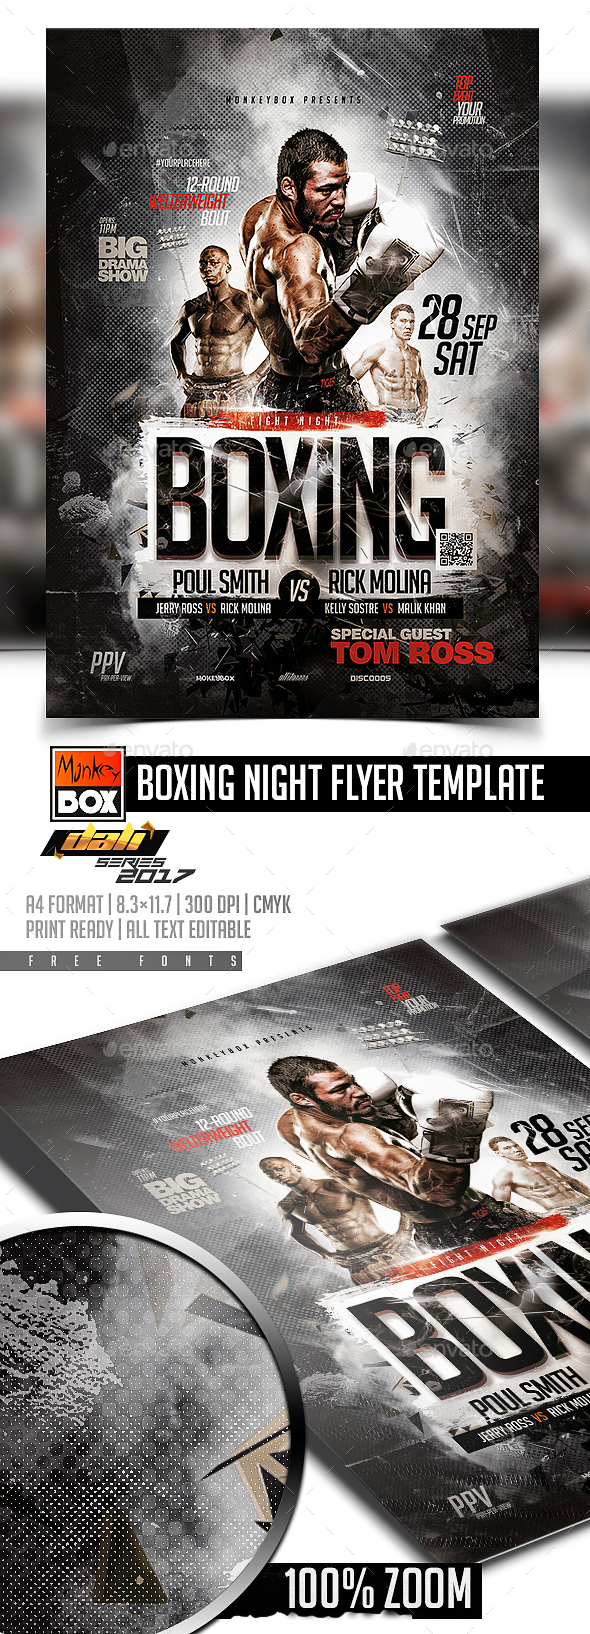 Boxing Night Flyer Template - Flyers Print Templates